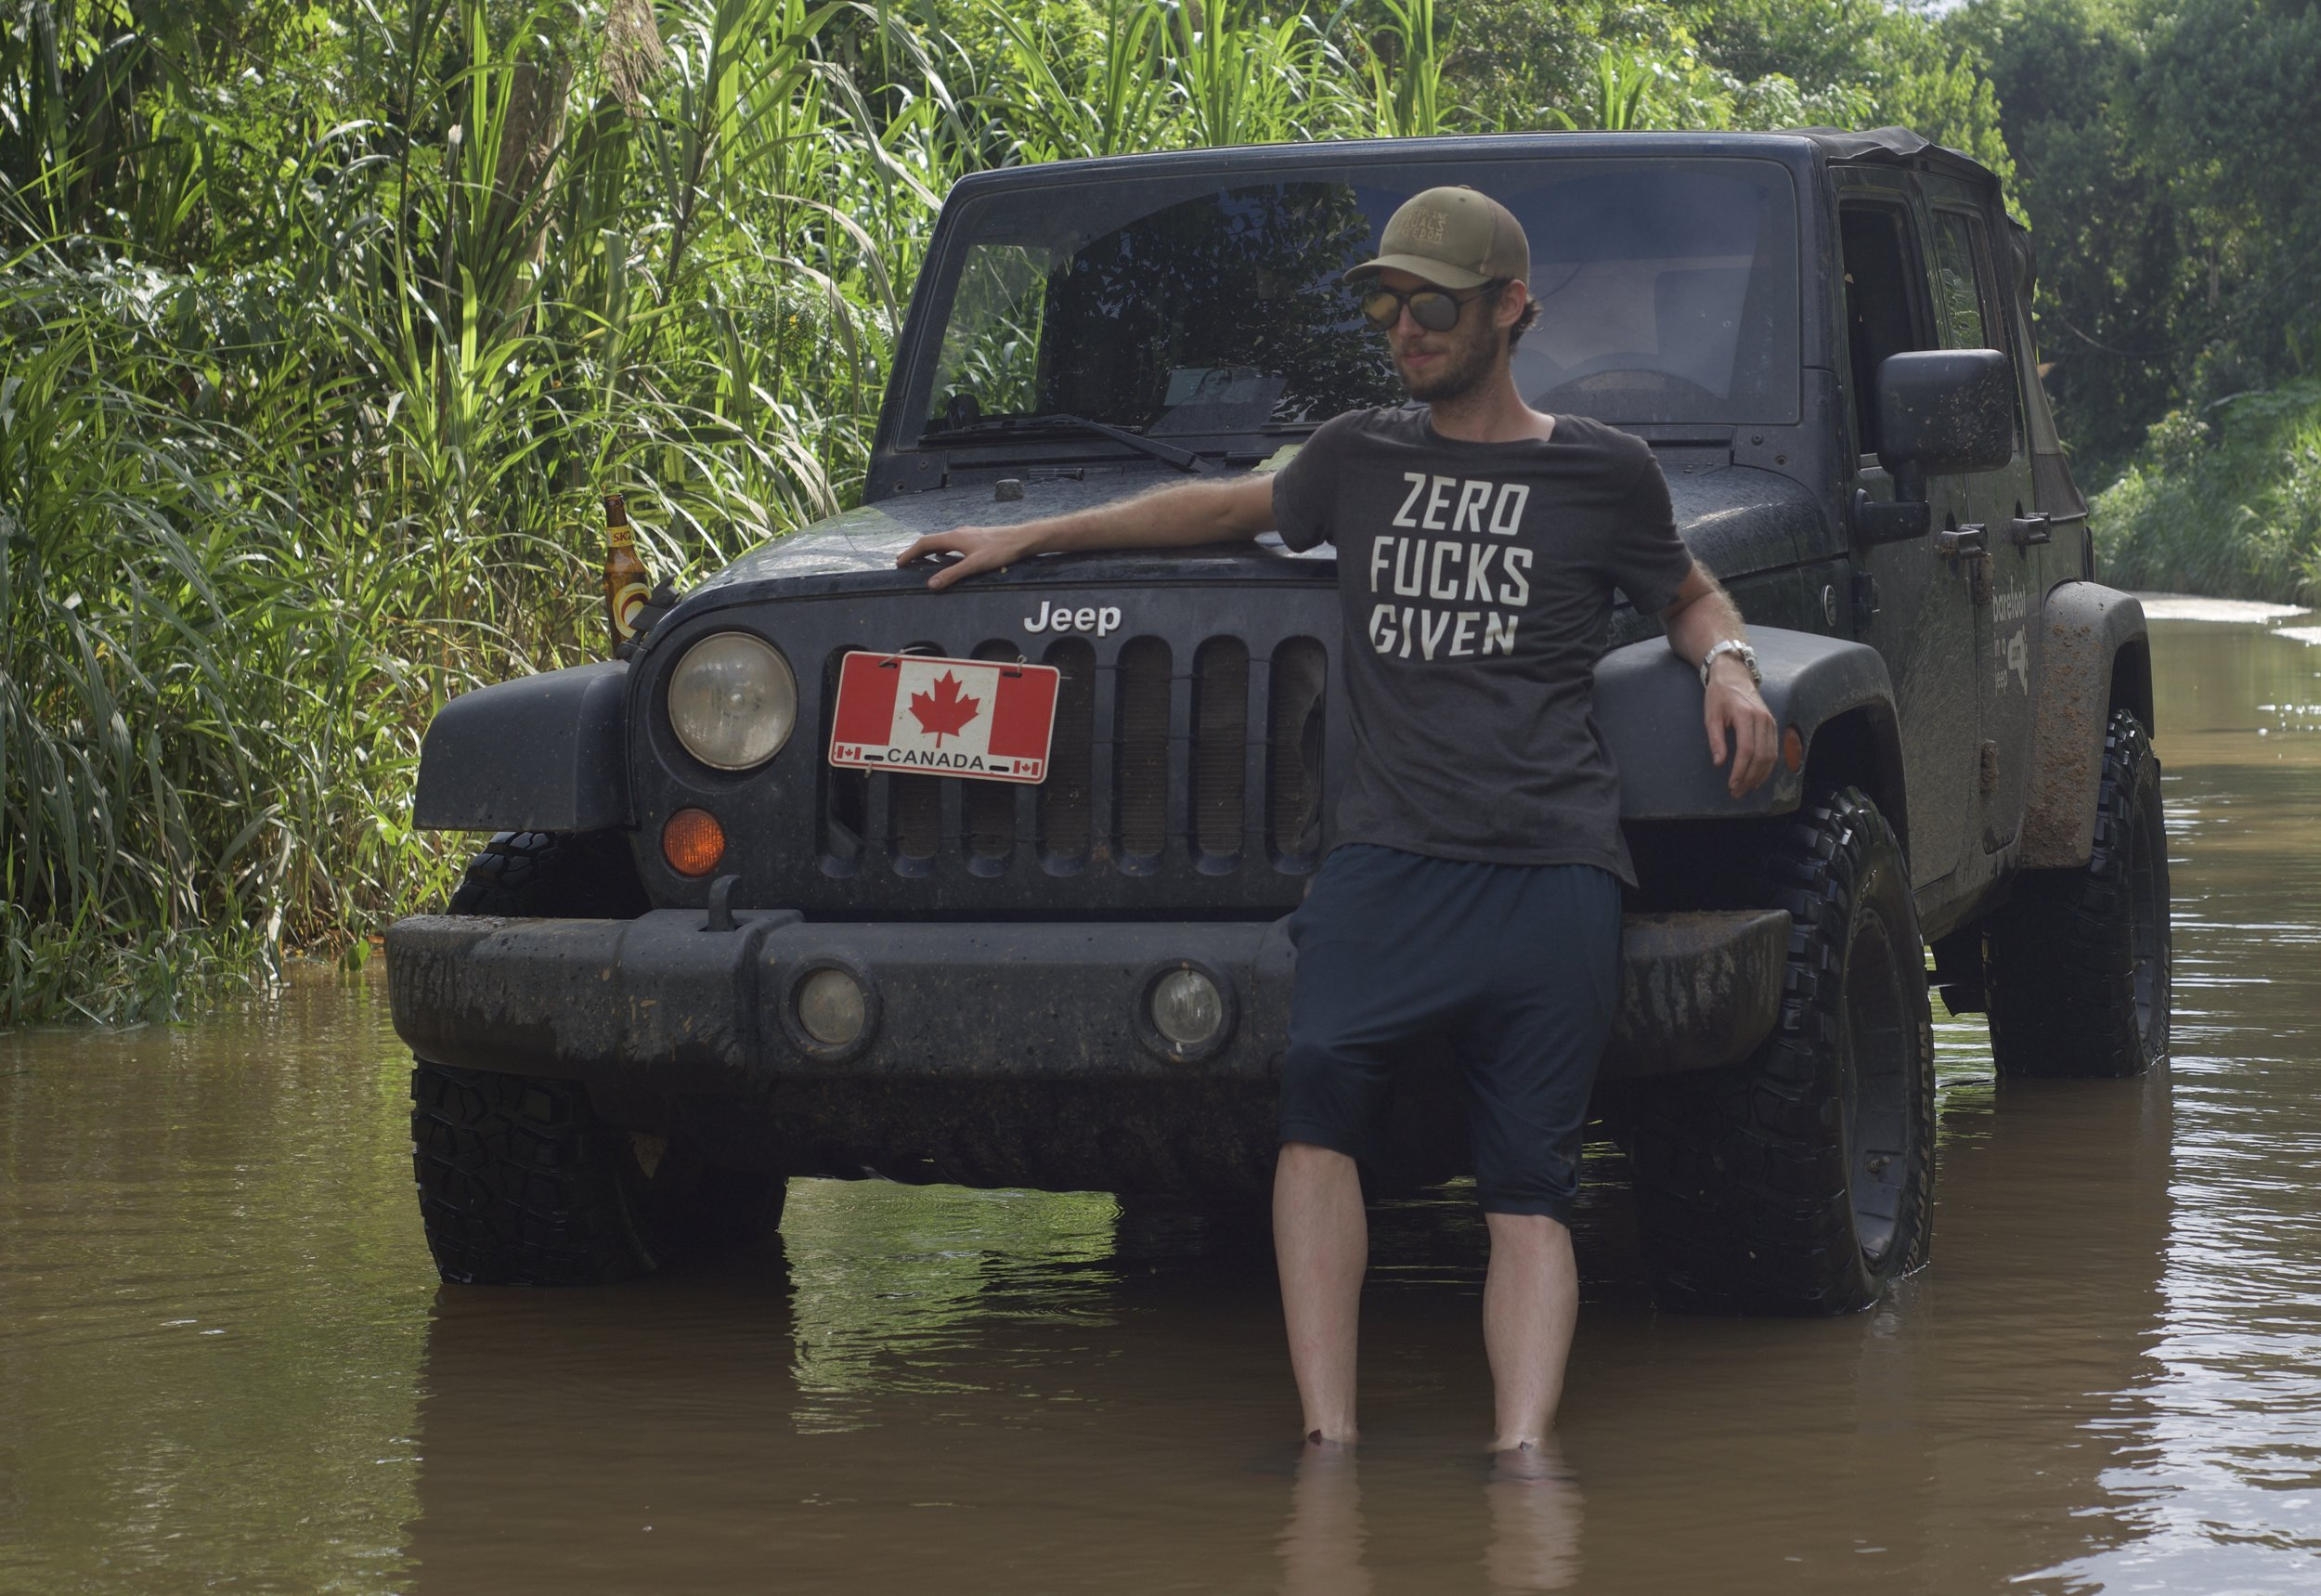 After almost loosing the Jeep in a river, I decided to pose with a ZERO FUCKS GIVEN t-shirt.